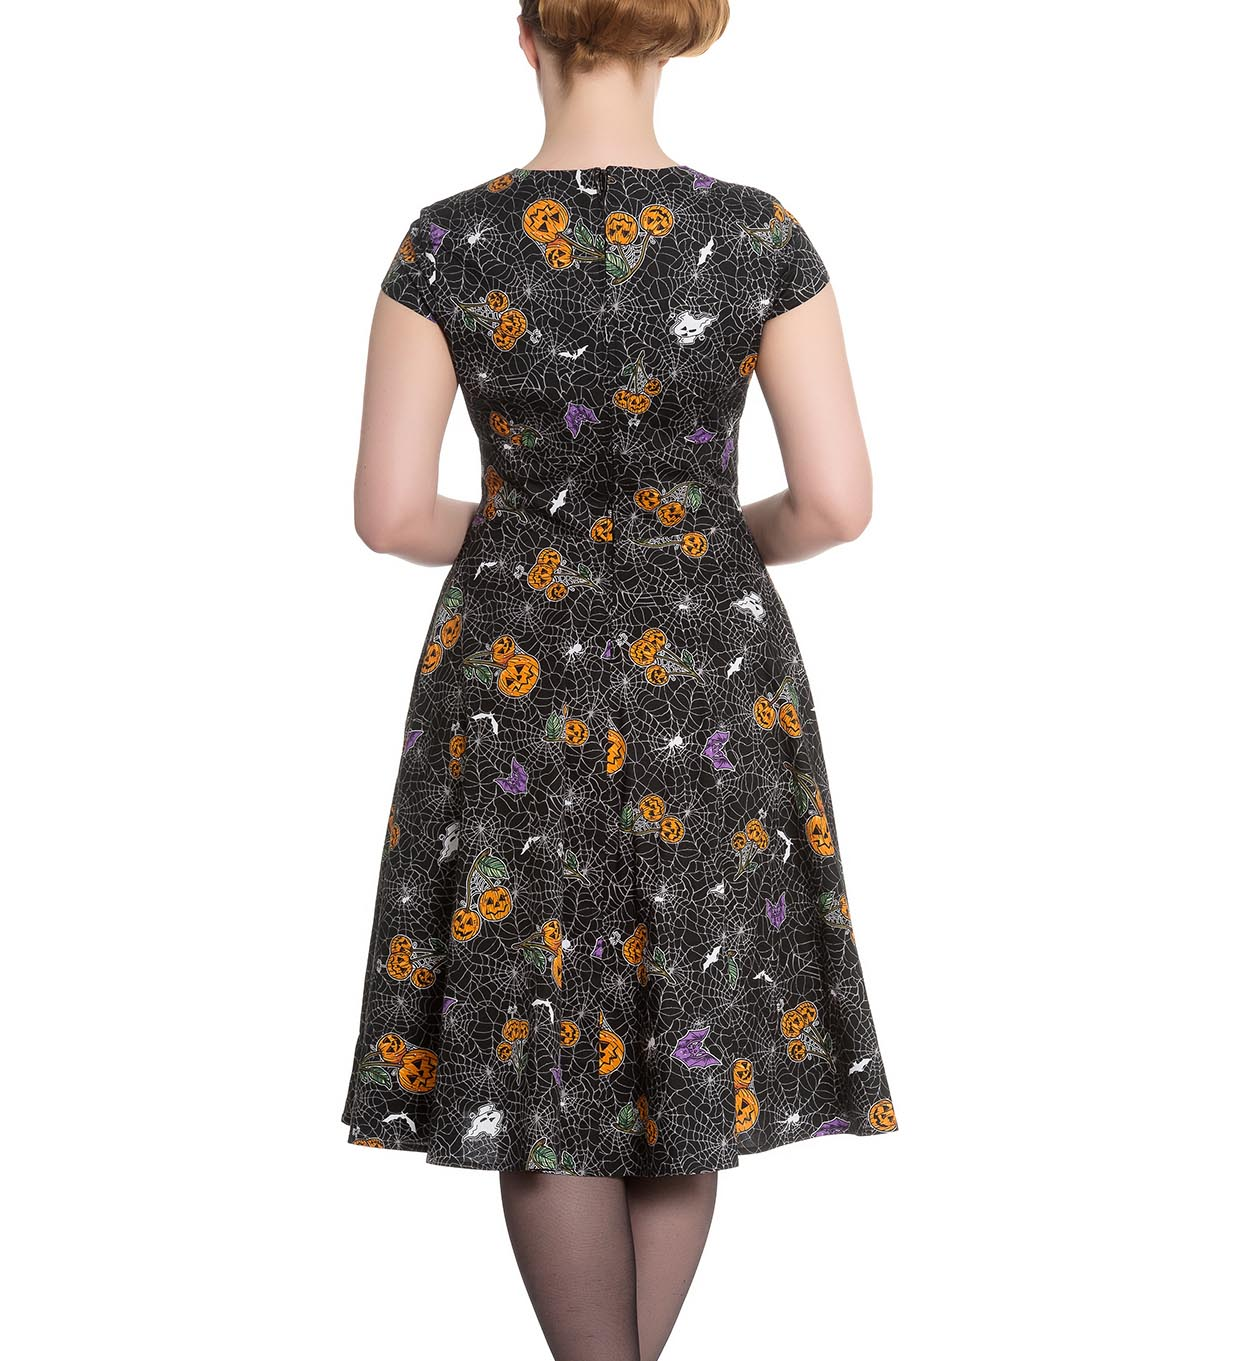 Hell-Bunny-Black-Pinup-50s-Goth-Webs-Dress-HARLOW-Halloween-All-Sizes thumbnail 9